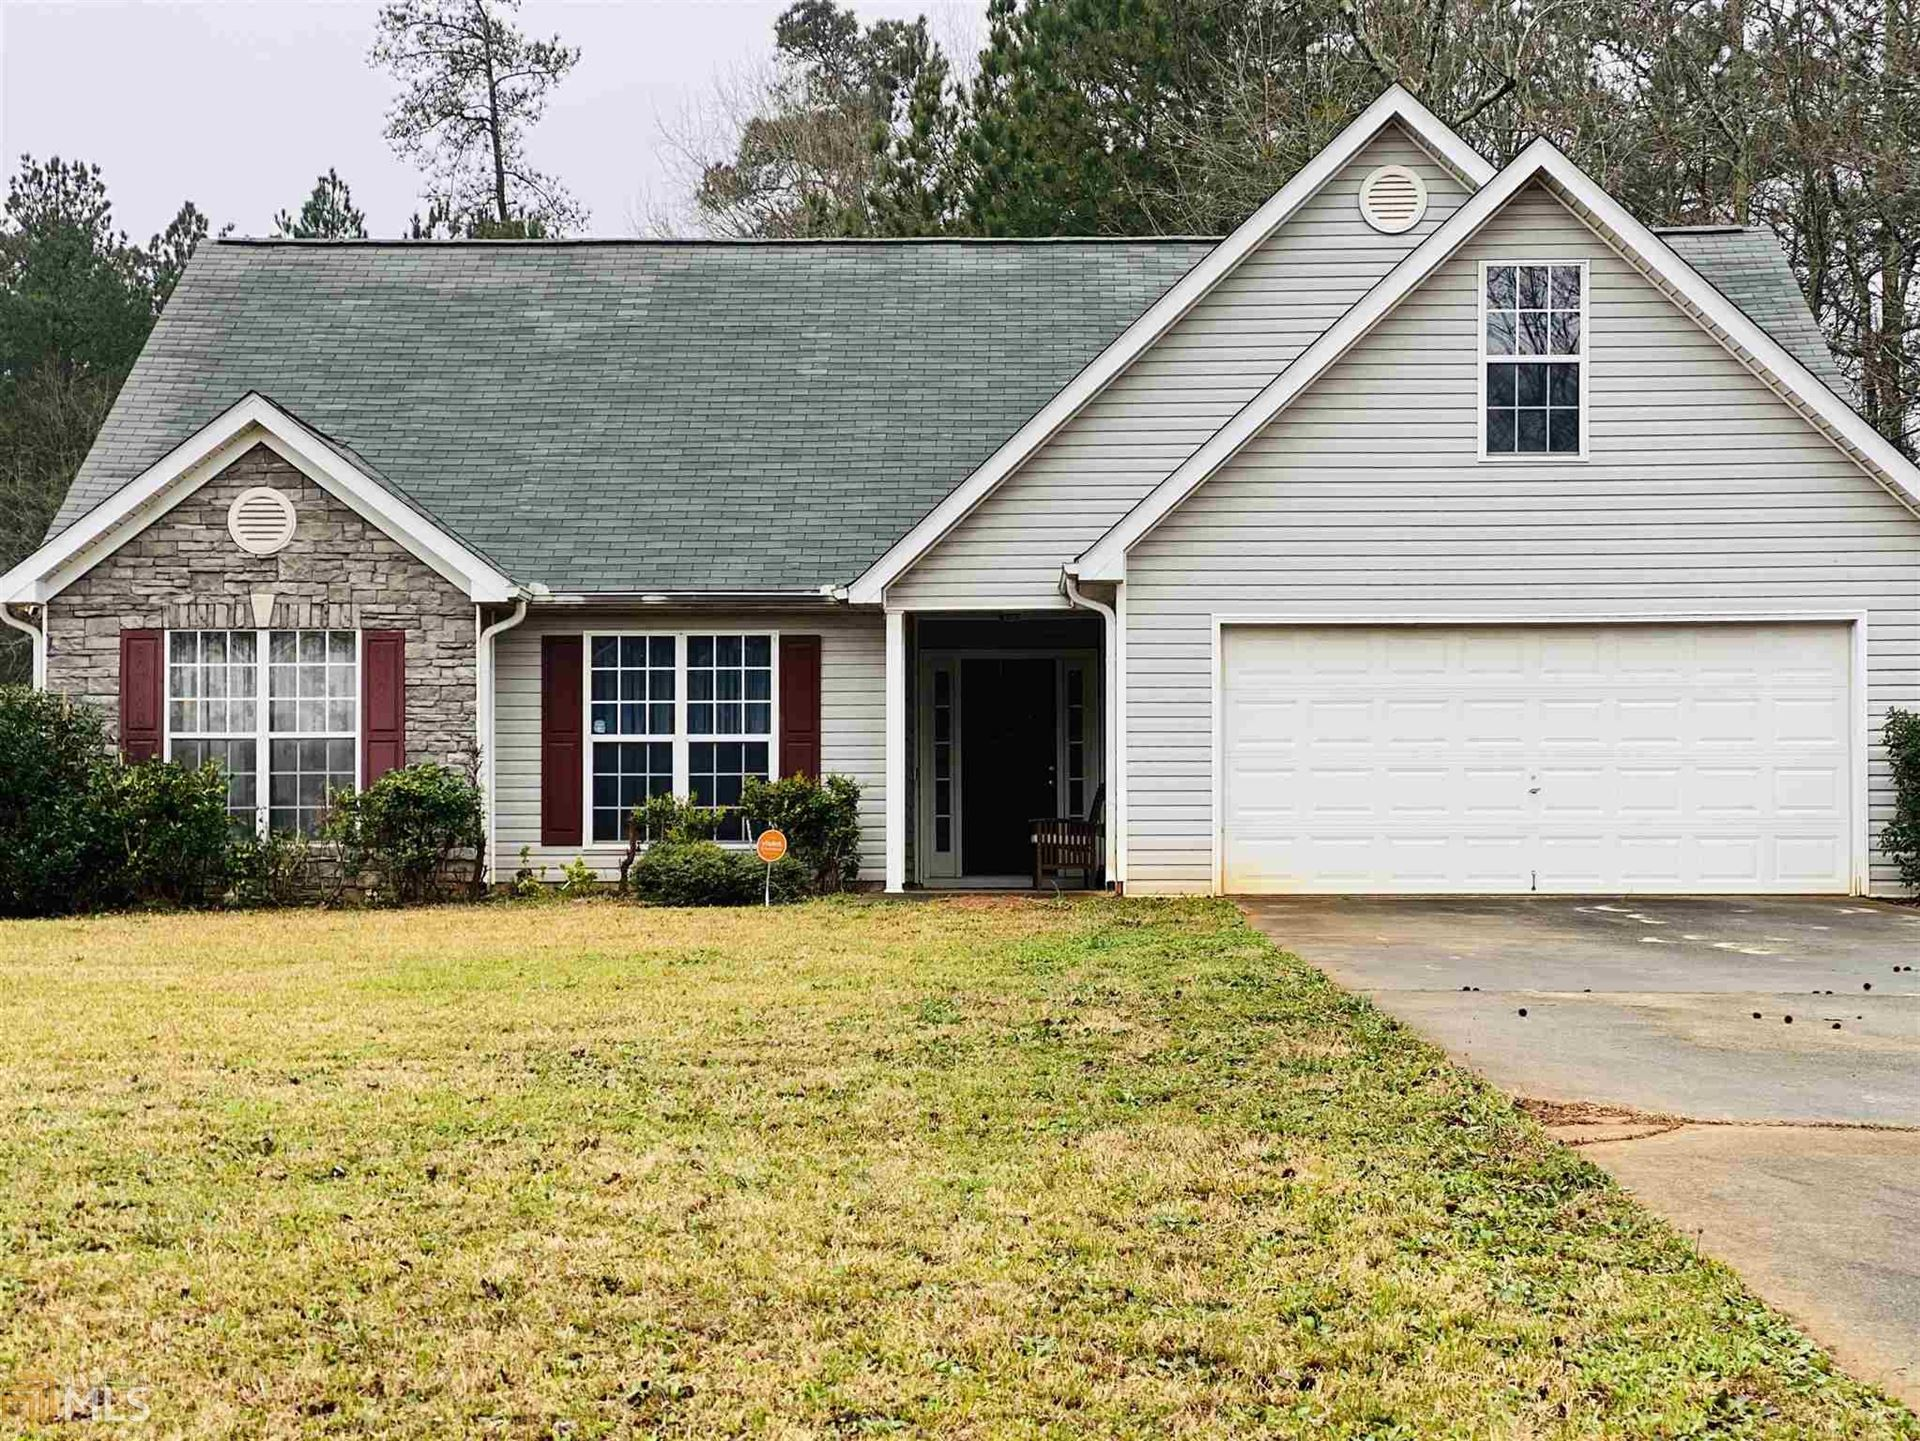 227 Autumn Ridge Dr, Griffin, GA 30224 - #: 8946537